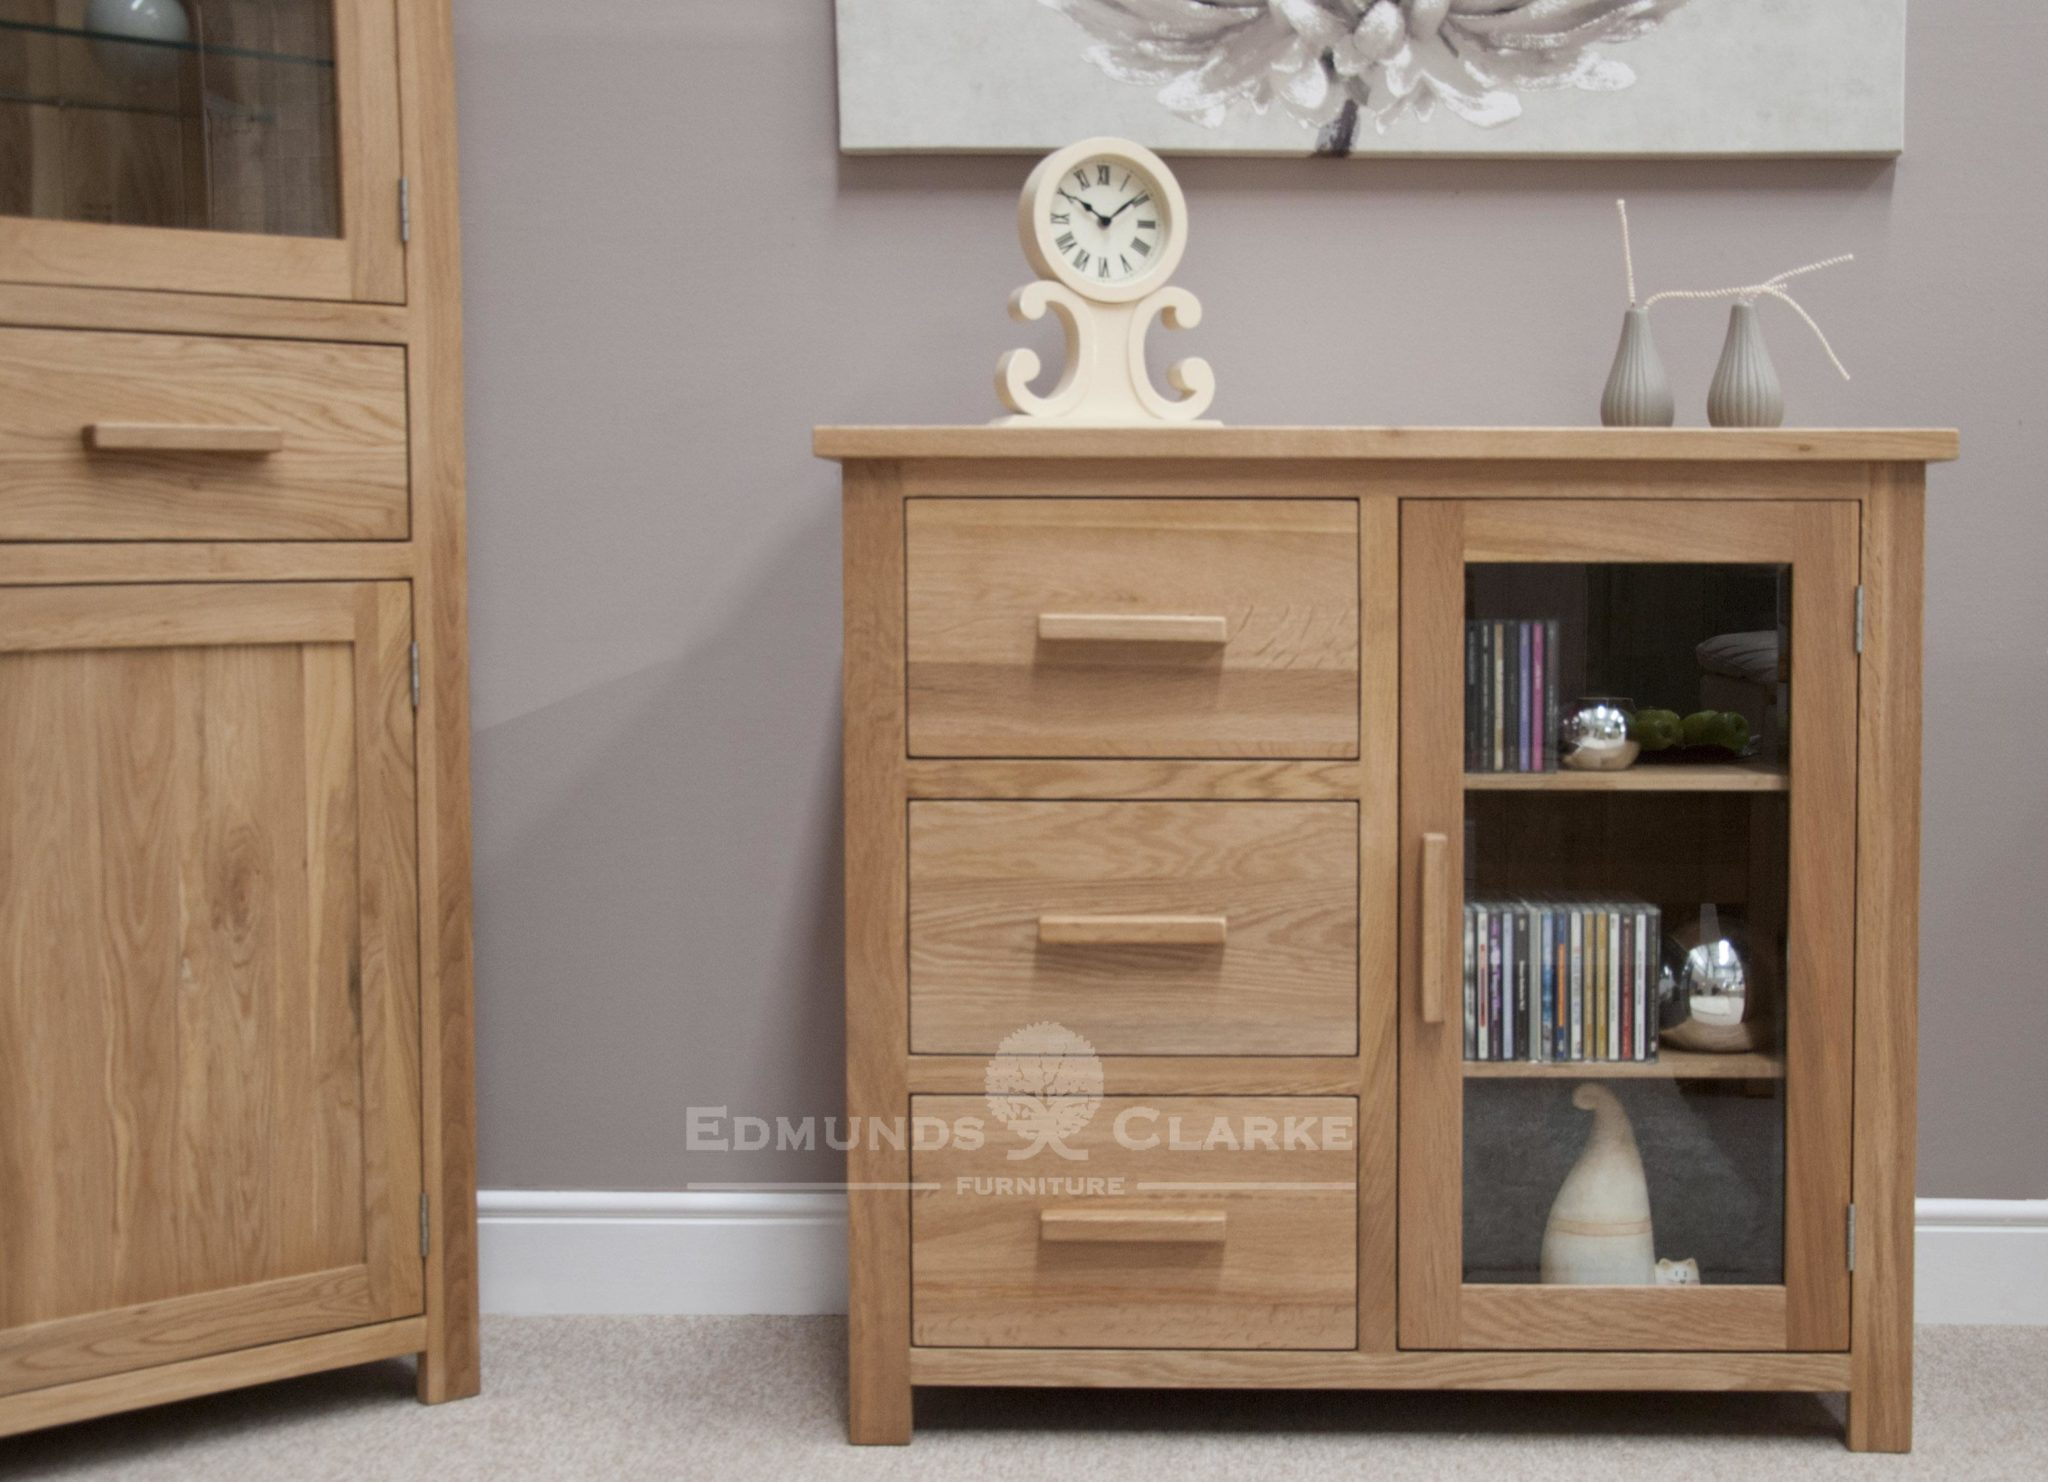 Bury small oak glazed chest, 3 drawers to the left and small glazed door to right with adjustable oak shelves, chrome fitted handle fitted as standard